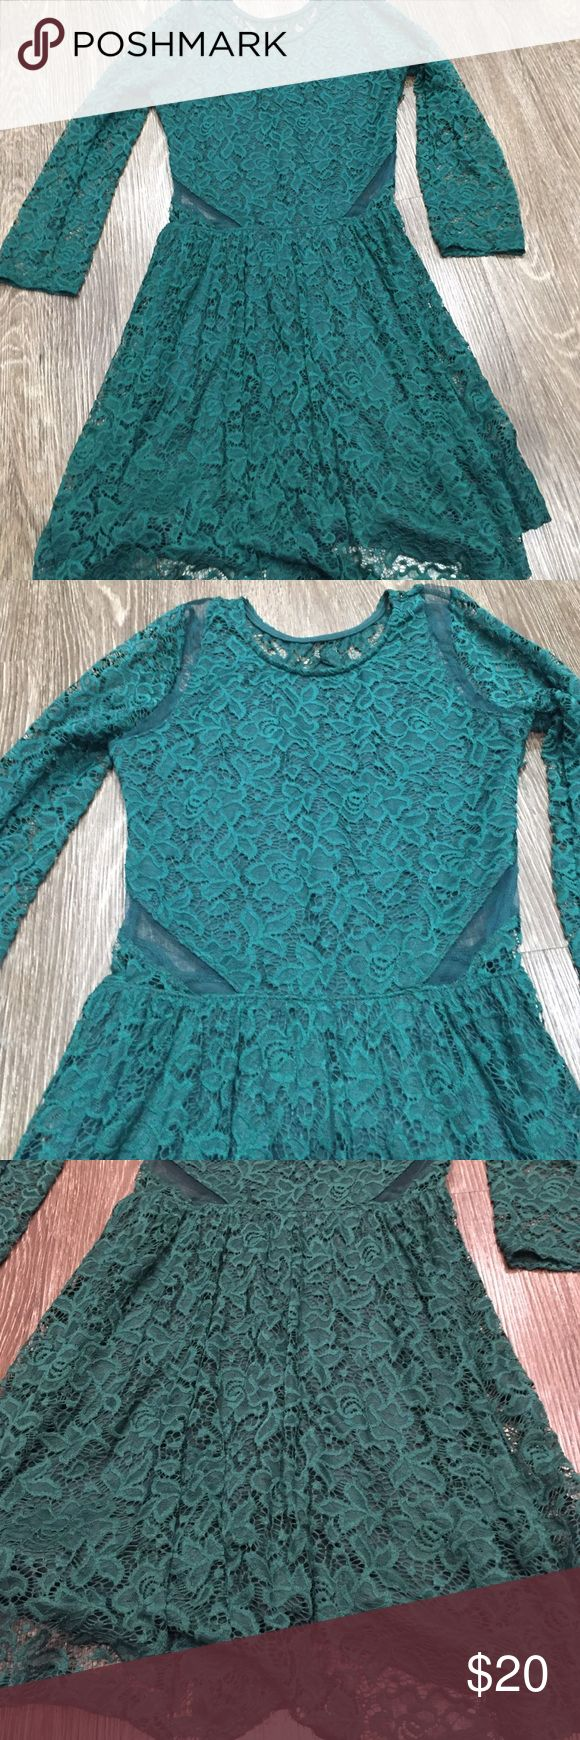 Abercrombie and Fitch lace green dress sz m New with out tags Abercrombie and Fitch sz m green lace dress no flaws Abercrombie & Fitch Dresses Mini